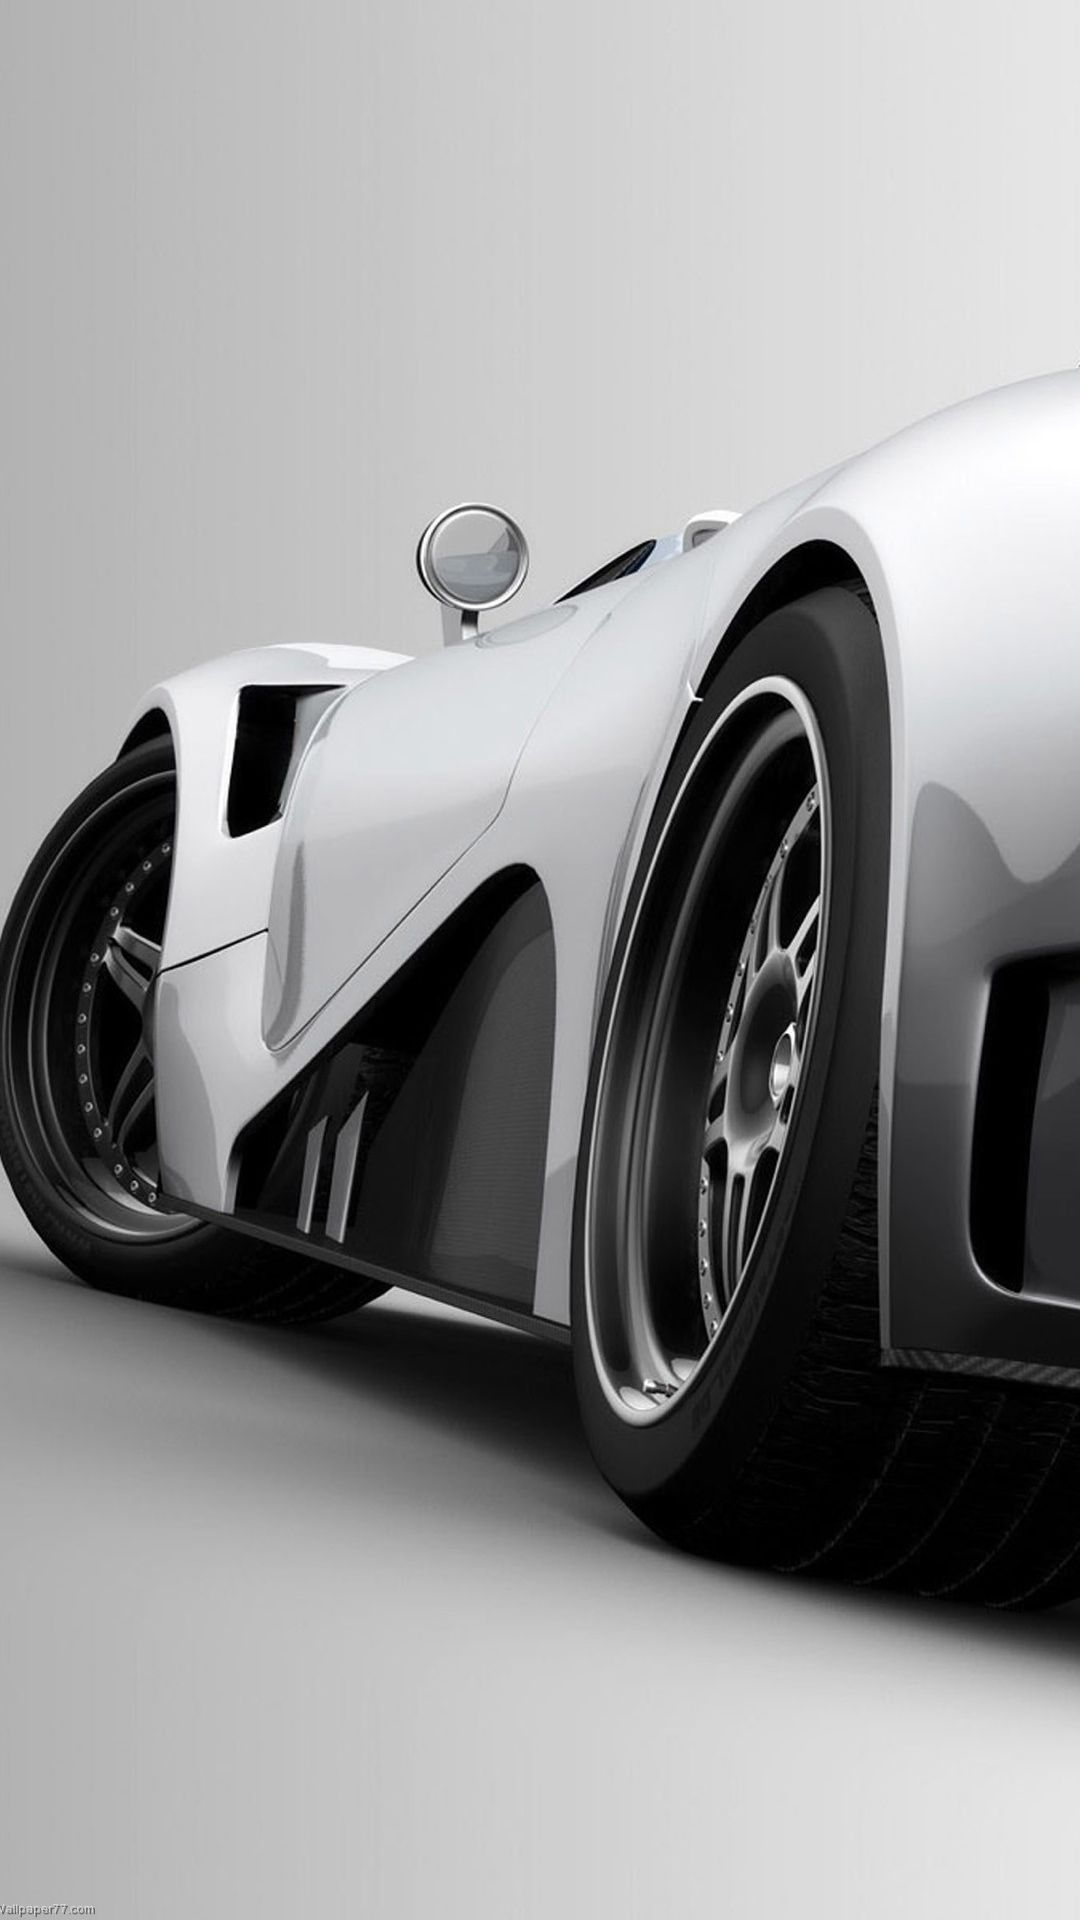 Black And White Super Sport Car Iphone 6 Plus Hd Wallpaper Http Freebestpicture Com Black And White Su Sports Car Wallpaper Car Wallpapers Super Sport Cars